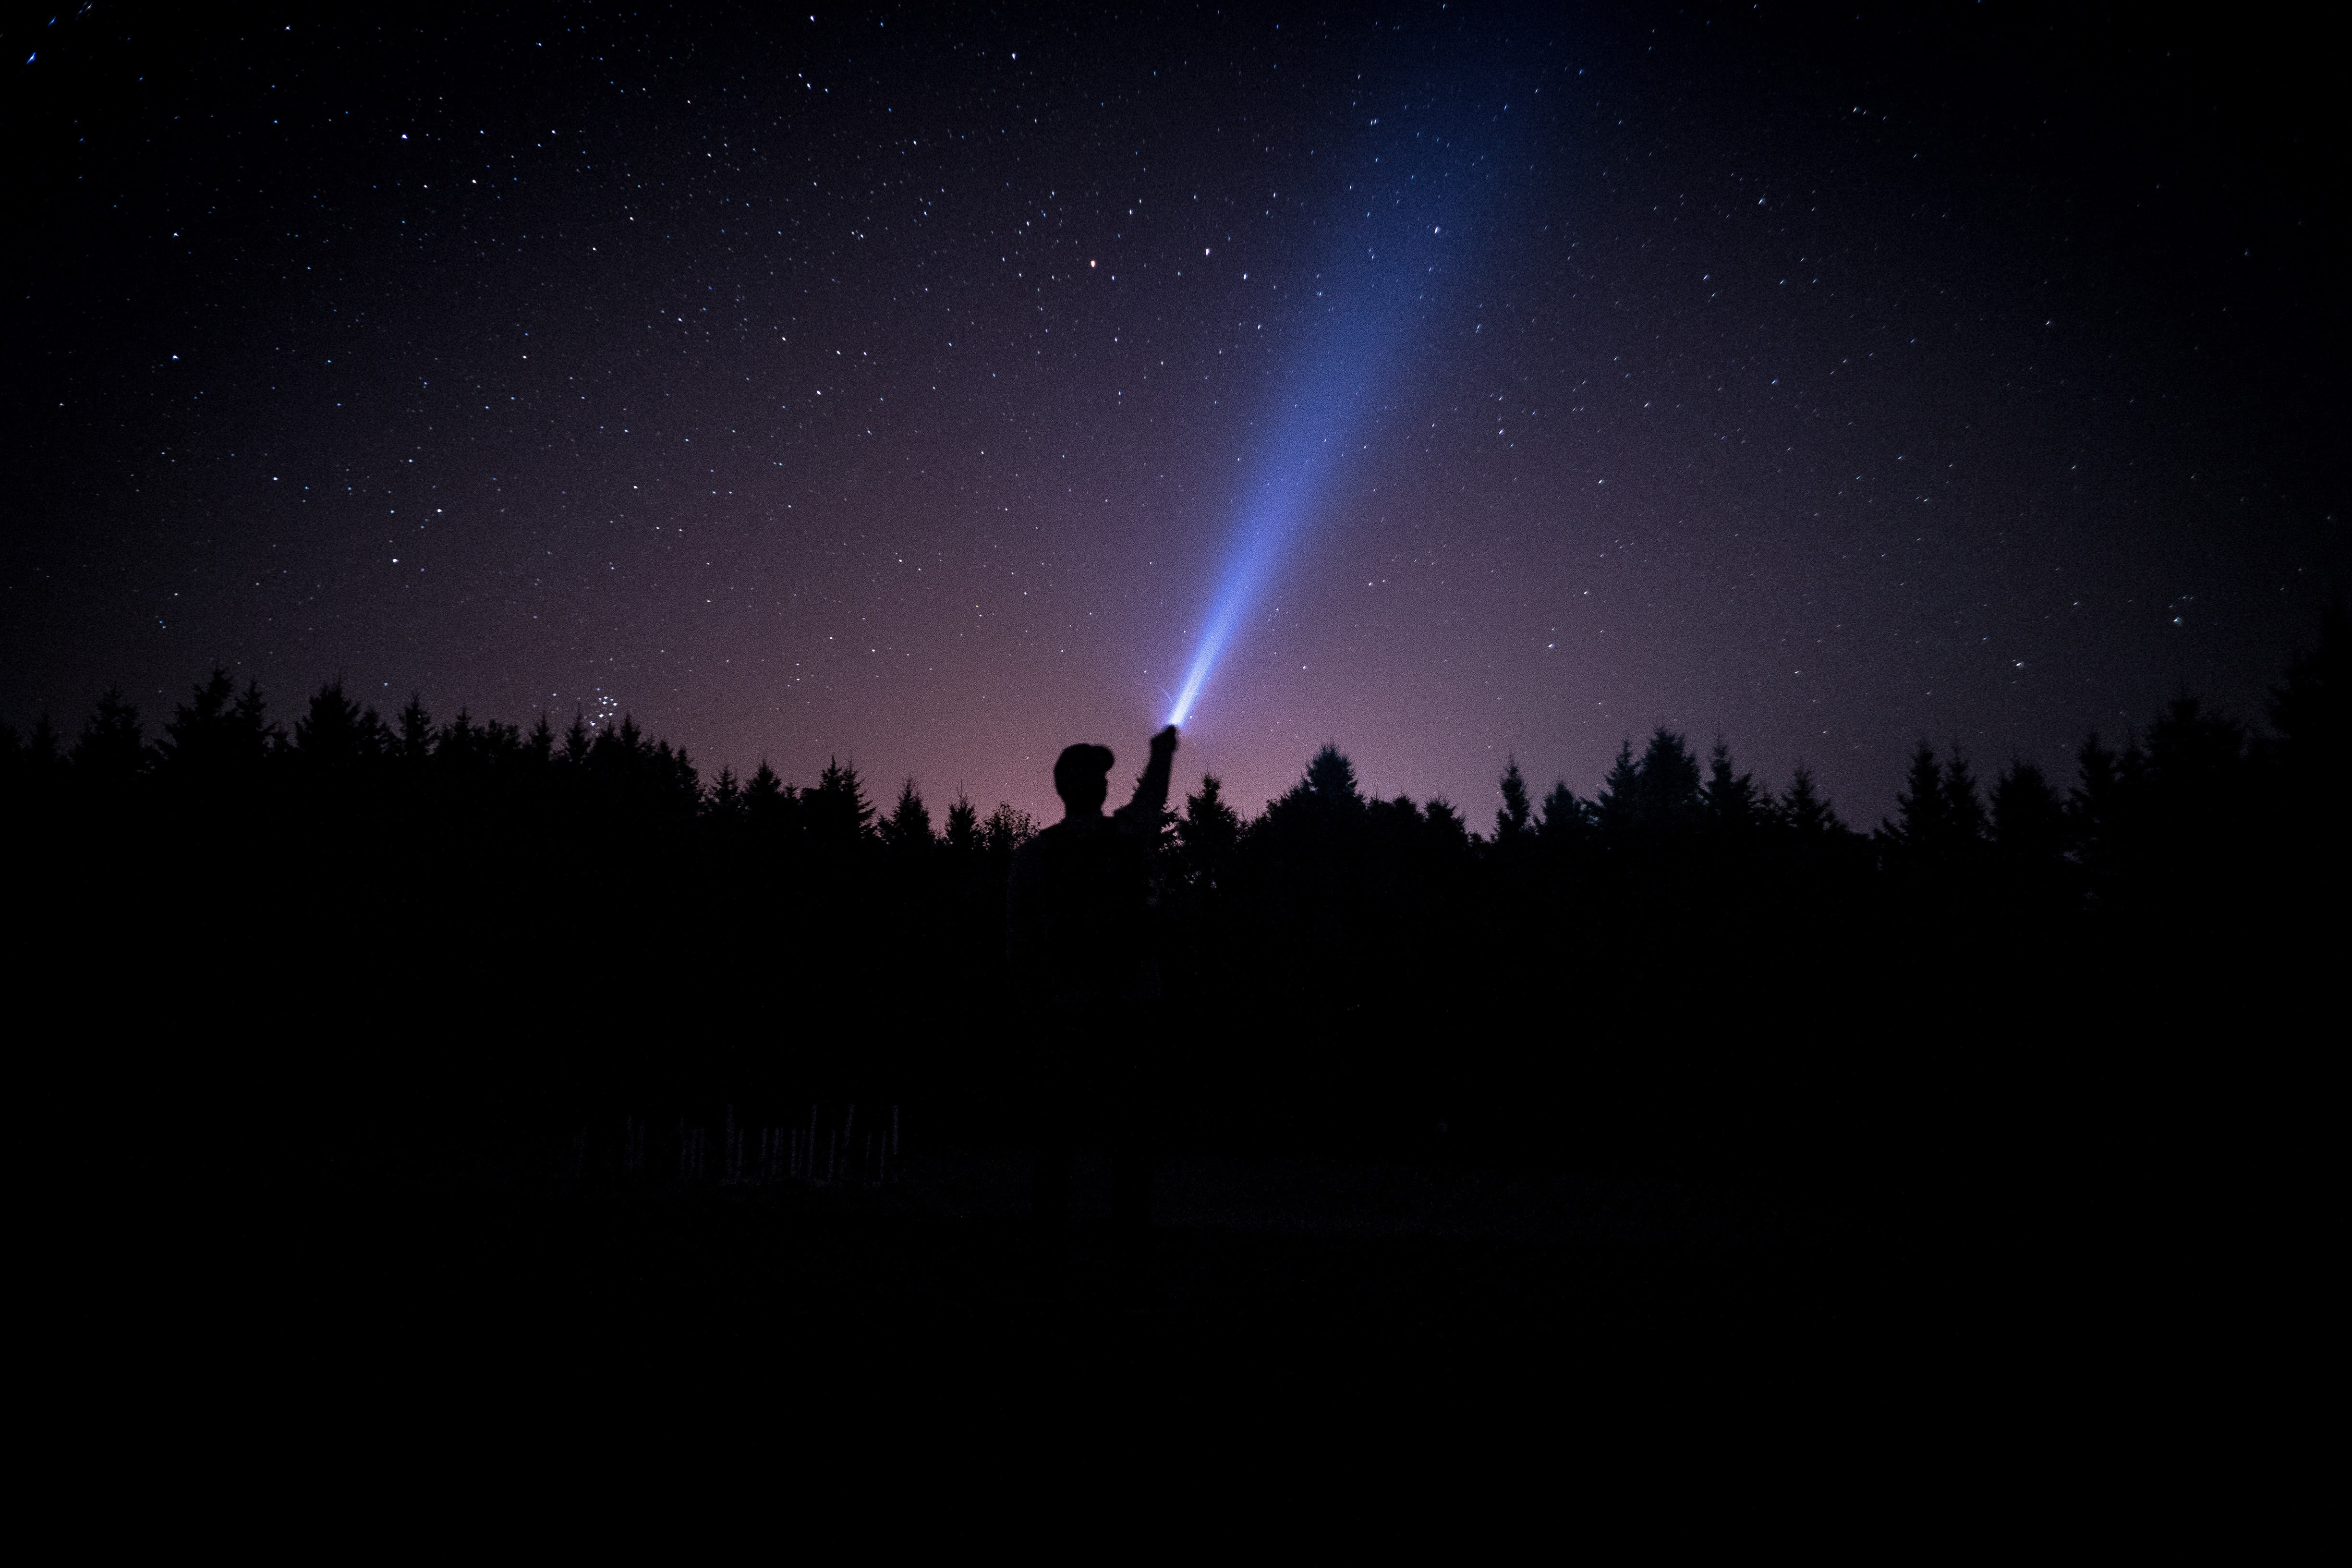 silhouette of person holding flashlight during nighttime